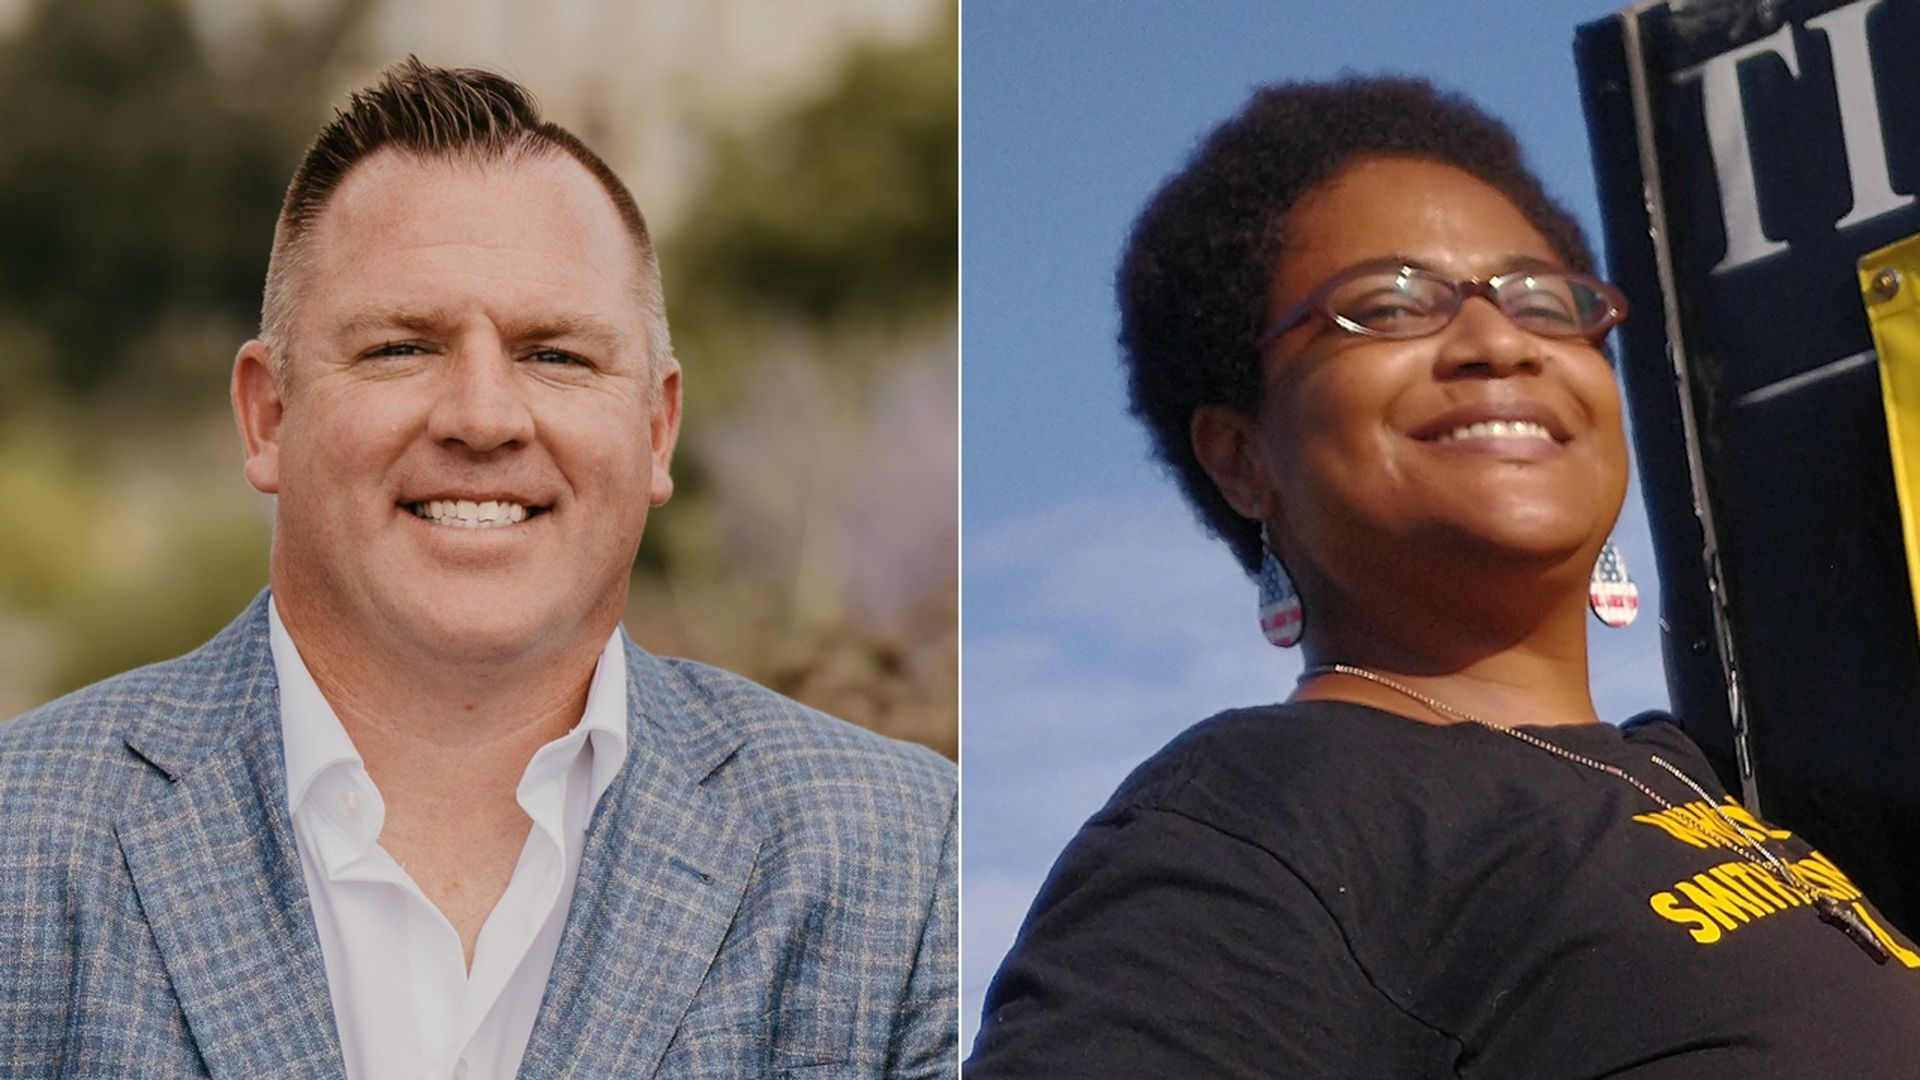 Candidates JC Ruddy and Whitney Smith McIntosh, who are running for school boards in Iowa.